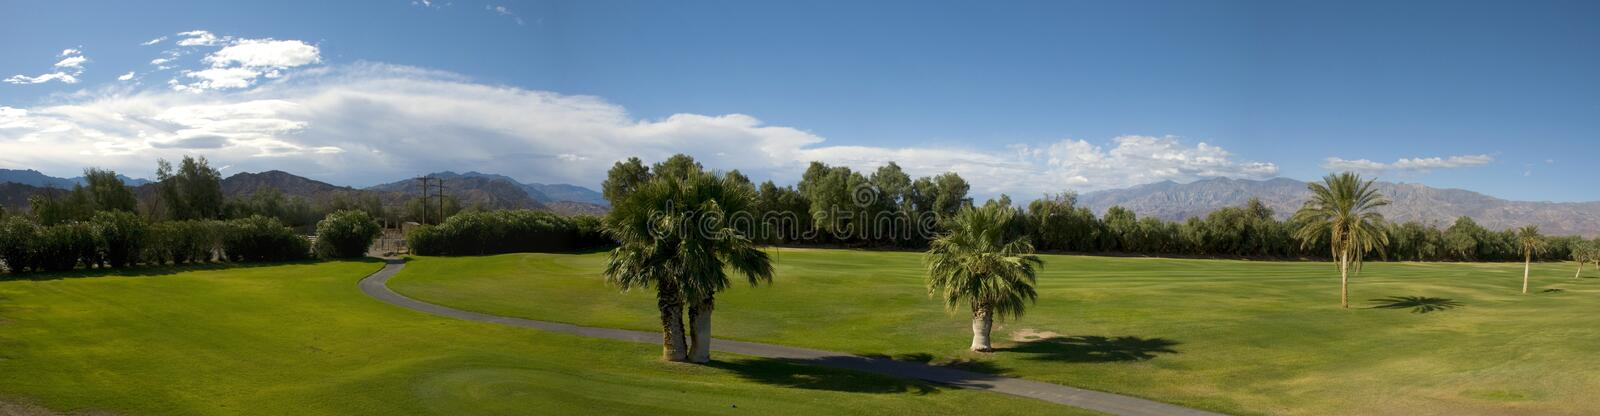 Panoramic view of green golf course in death valley stock photos